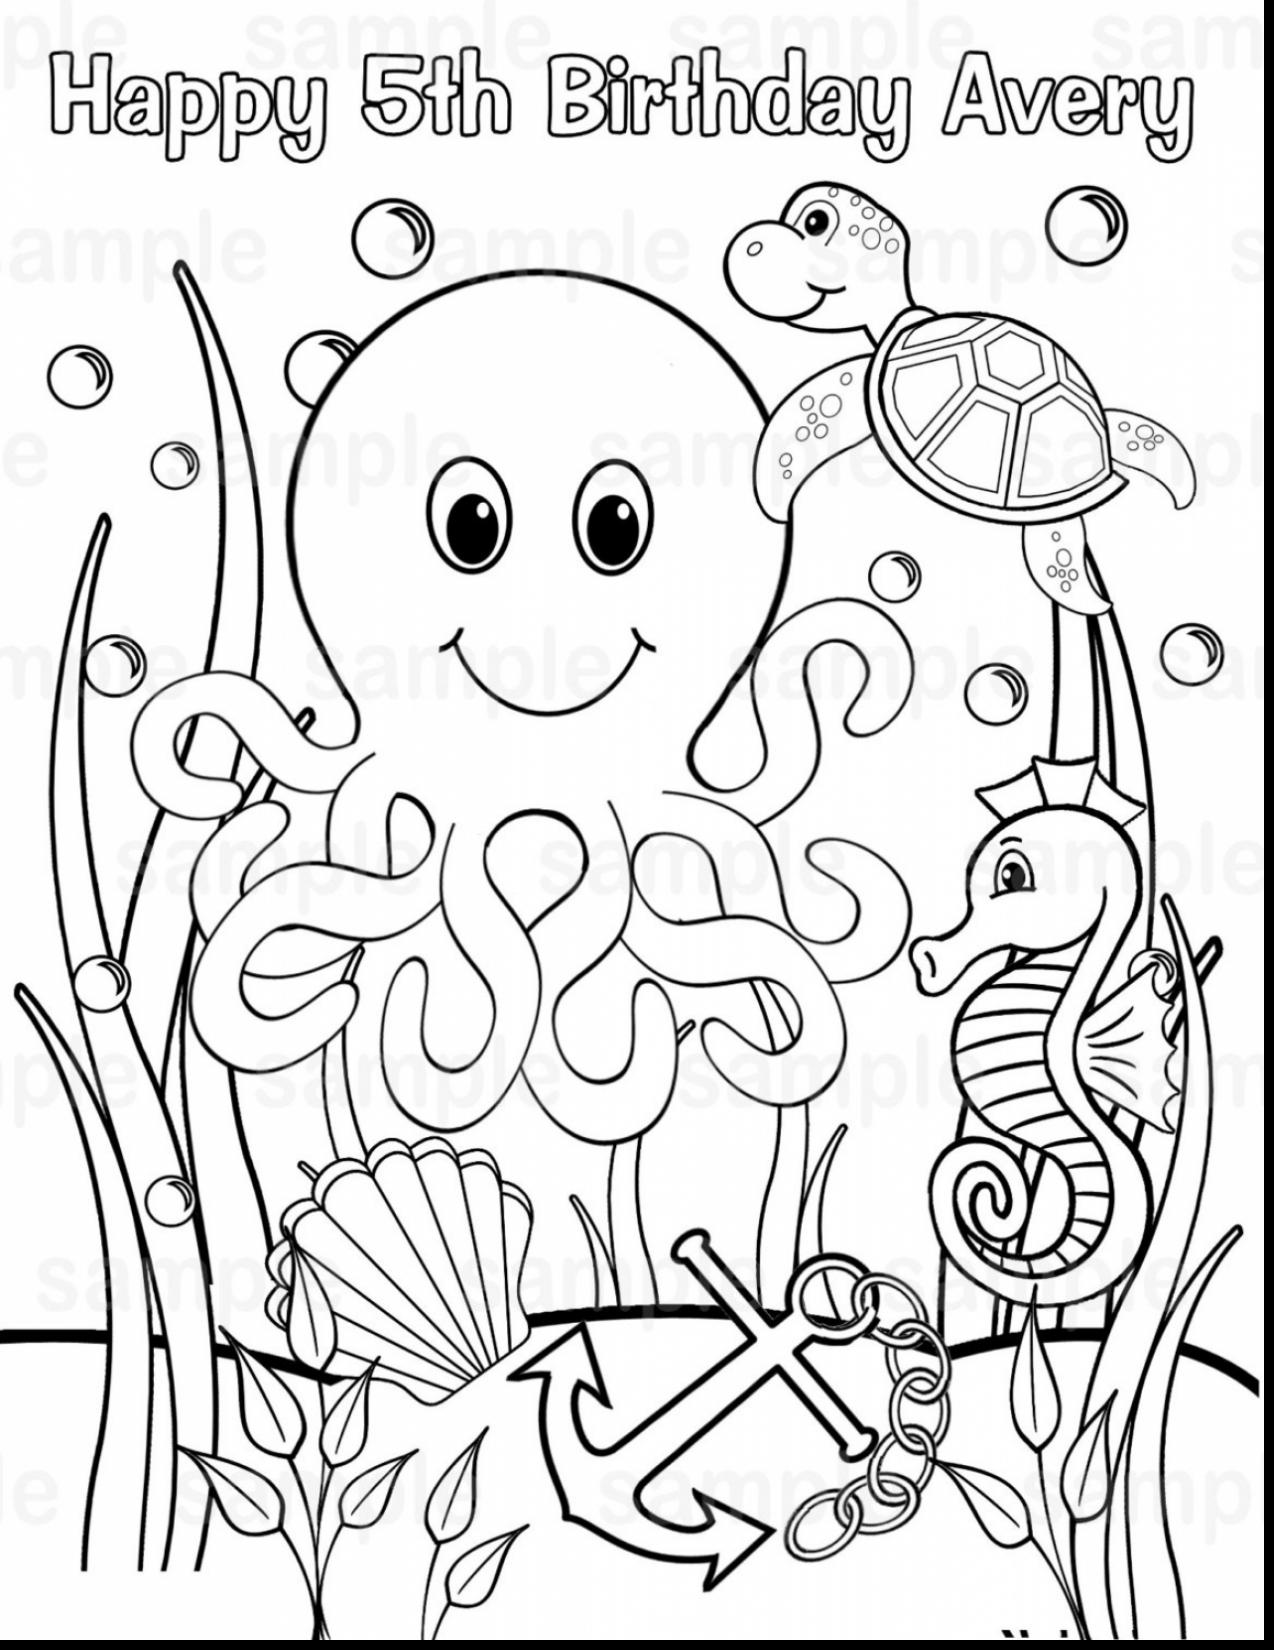 Adult Coloring Pages Beach At Getcolorings